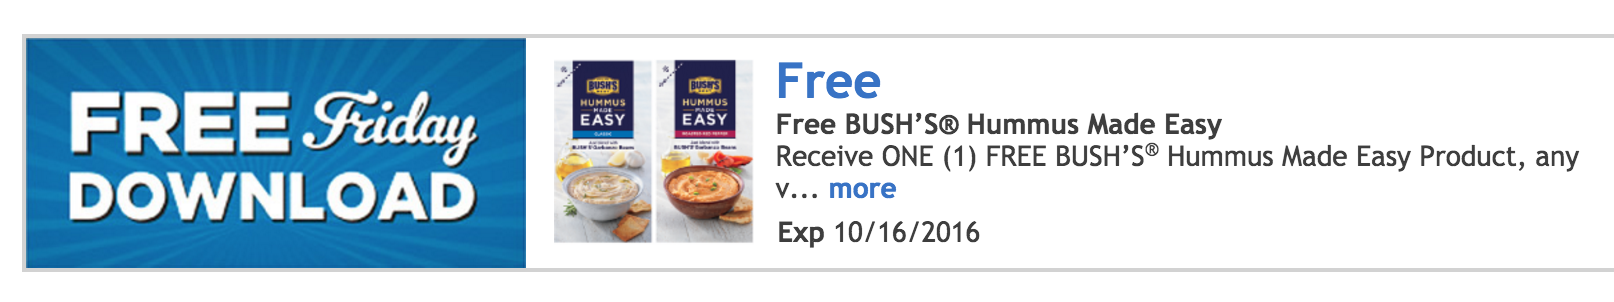 FREE Bush's Hummus Made Easy product